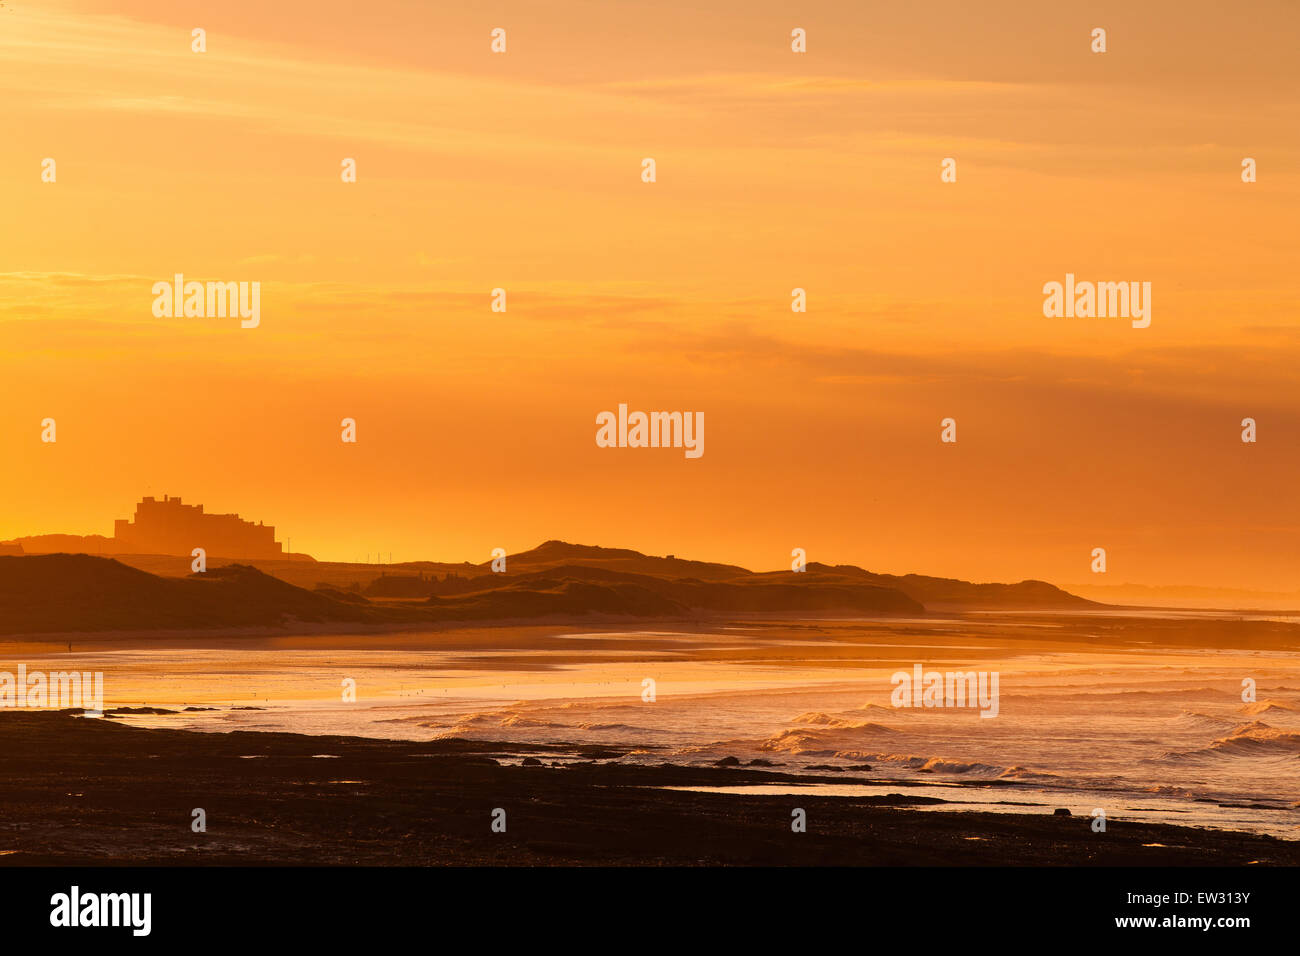 View of the  Bamburgh castle in a spectacular sunset from the Seahouses,Great Britain - Stock Image